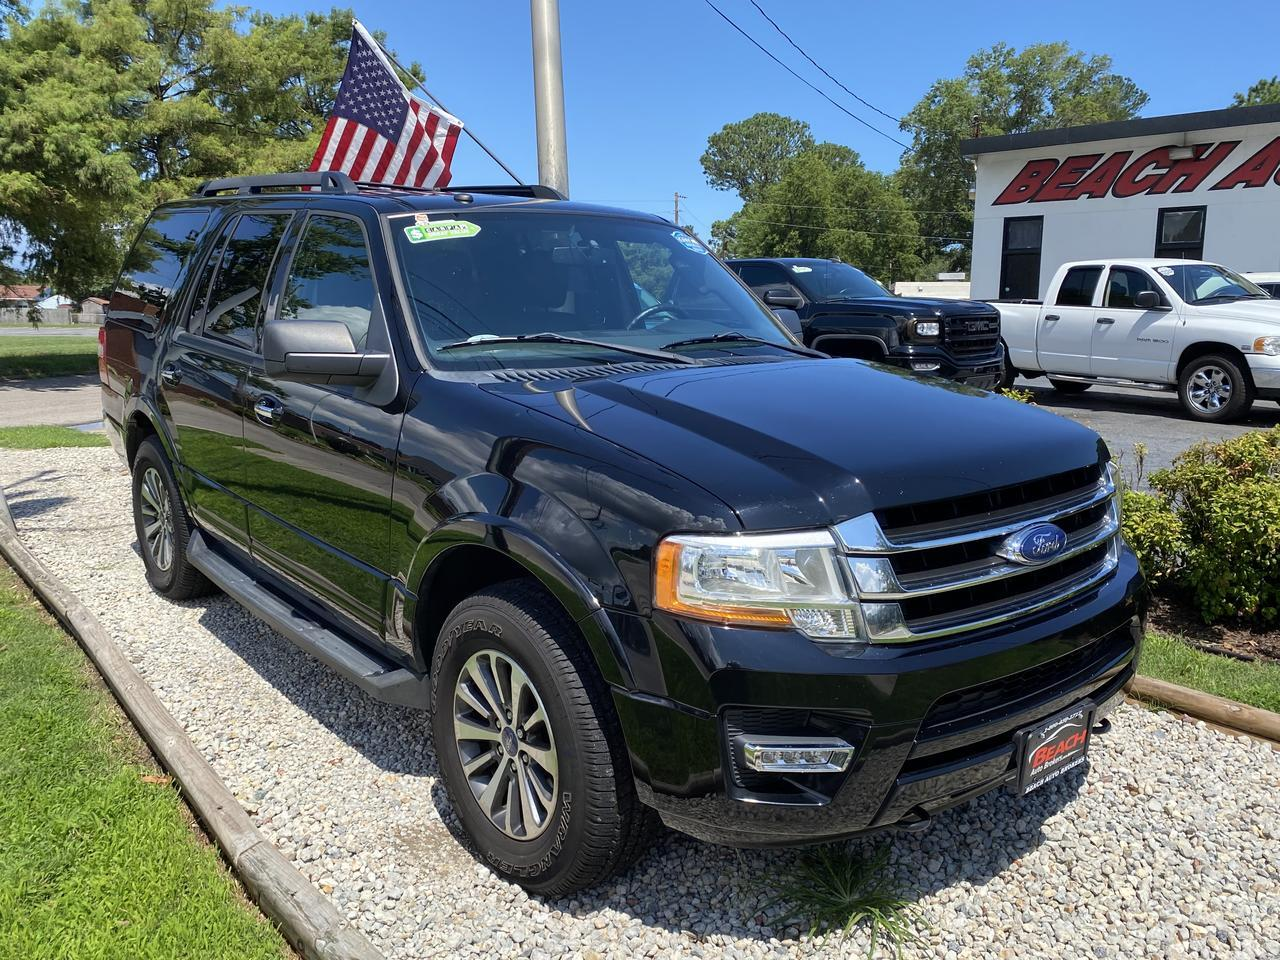 2017 FORD EXPEDITION XLT 4X4, WARRANTY, LEATHER, NAV, HEATED/COOLED SEATS, 3RD ROW, BACKUP CAM, 1 OWNER! Norfolk VA